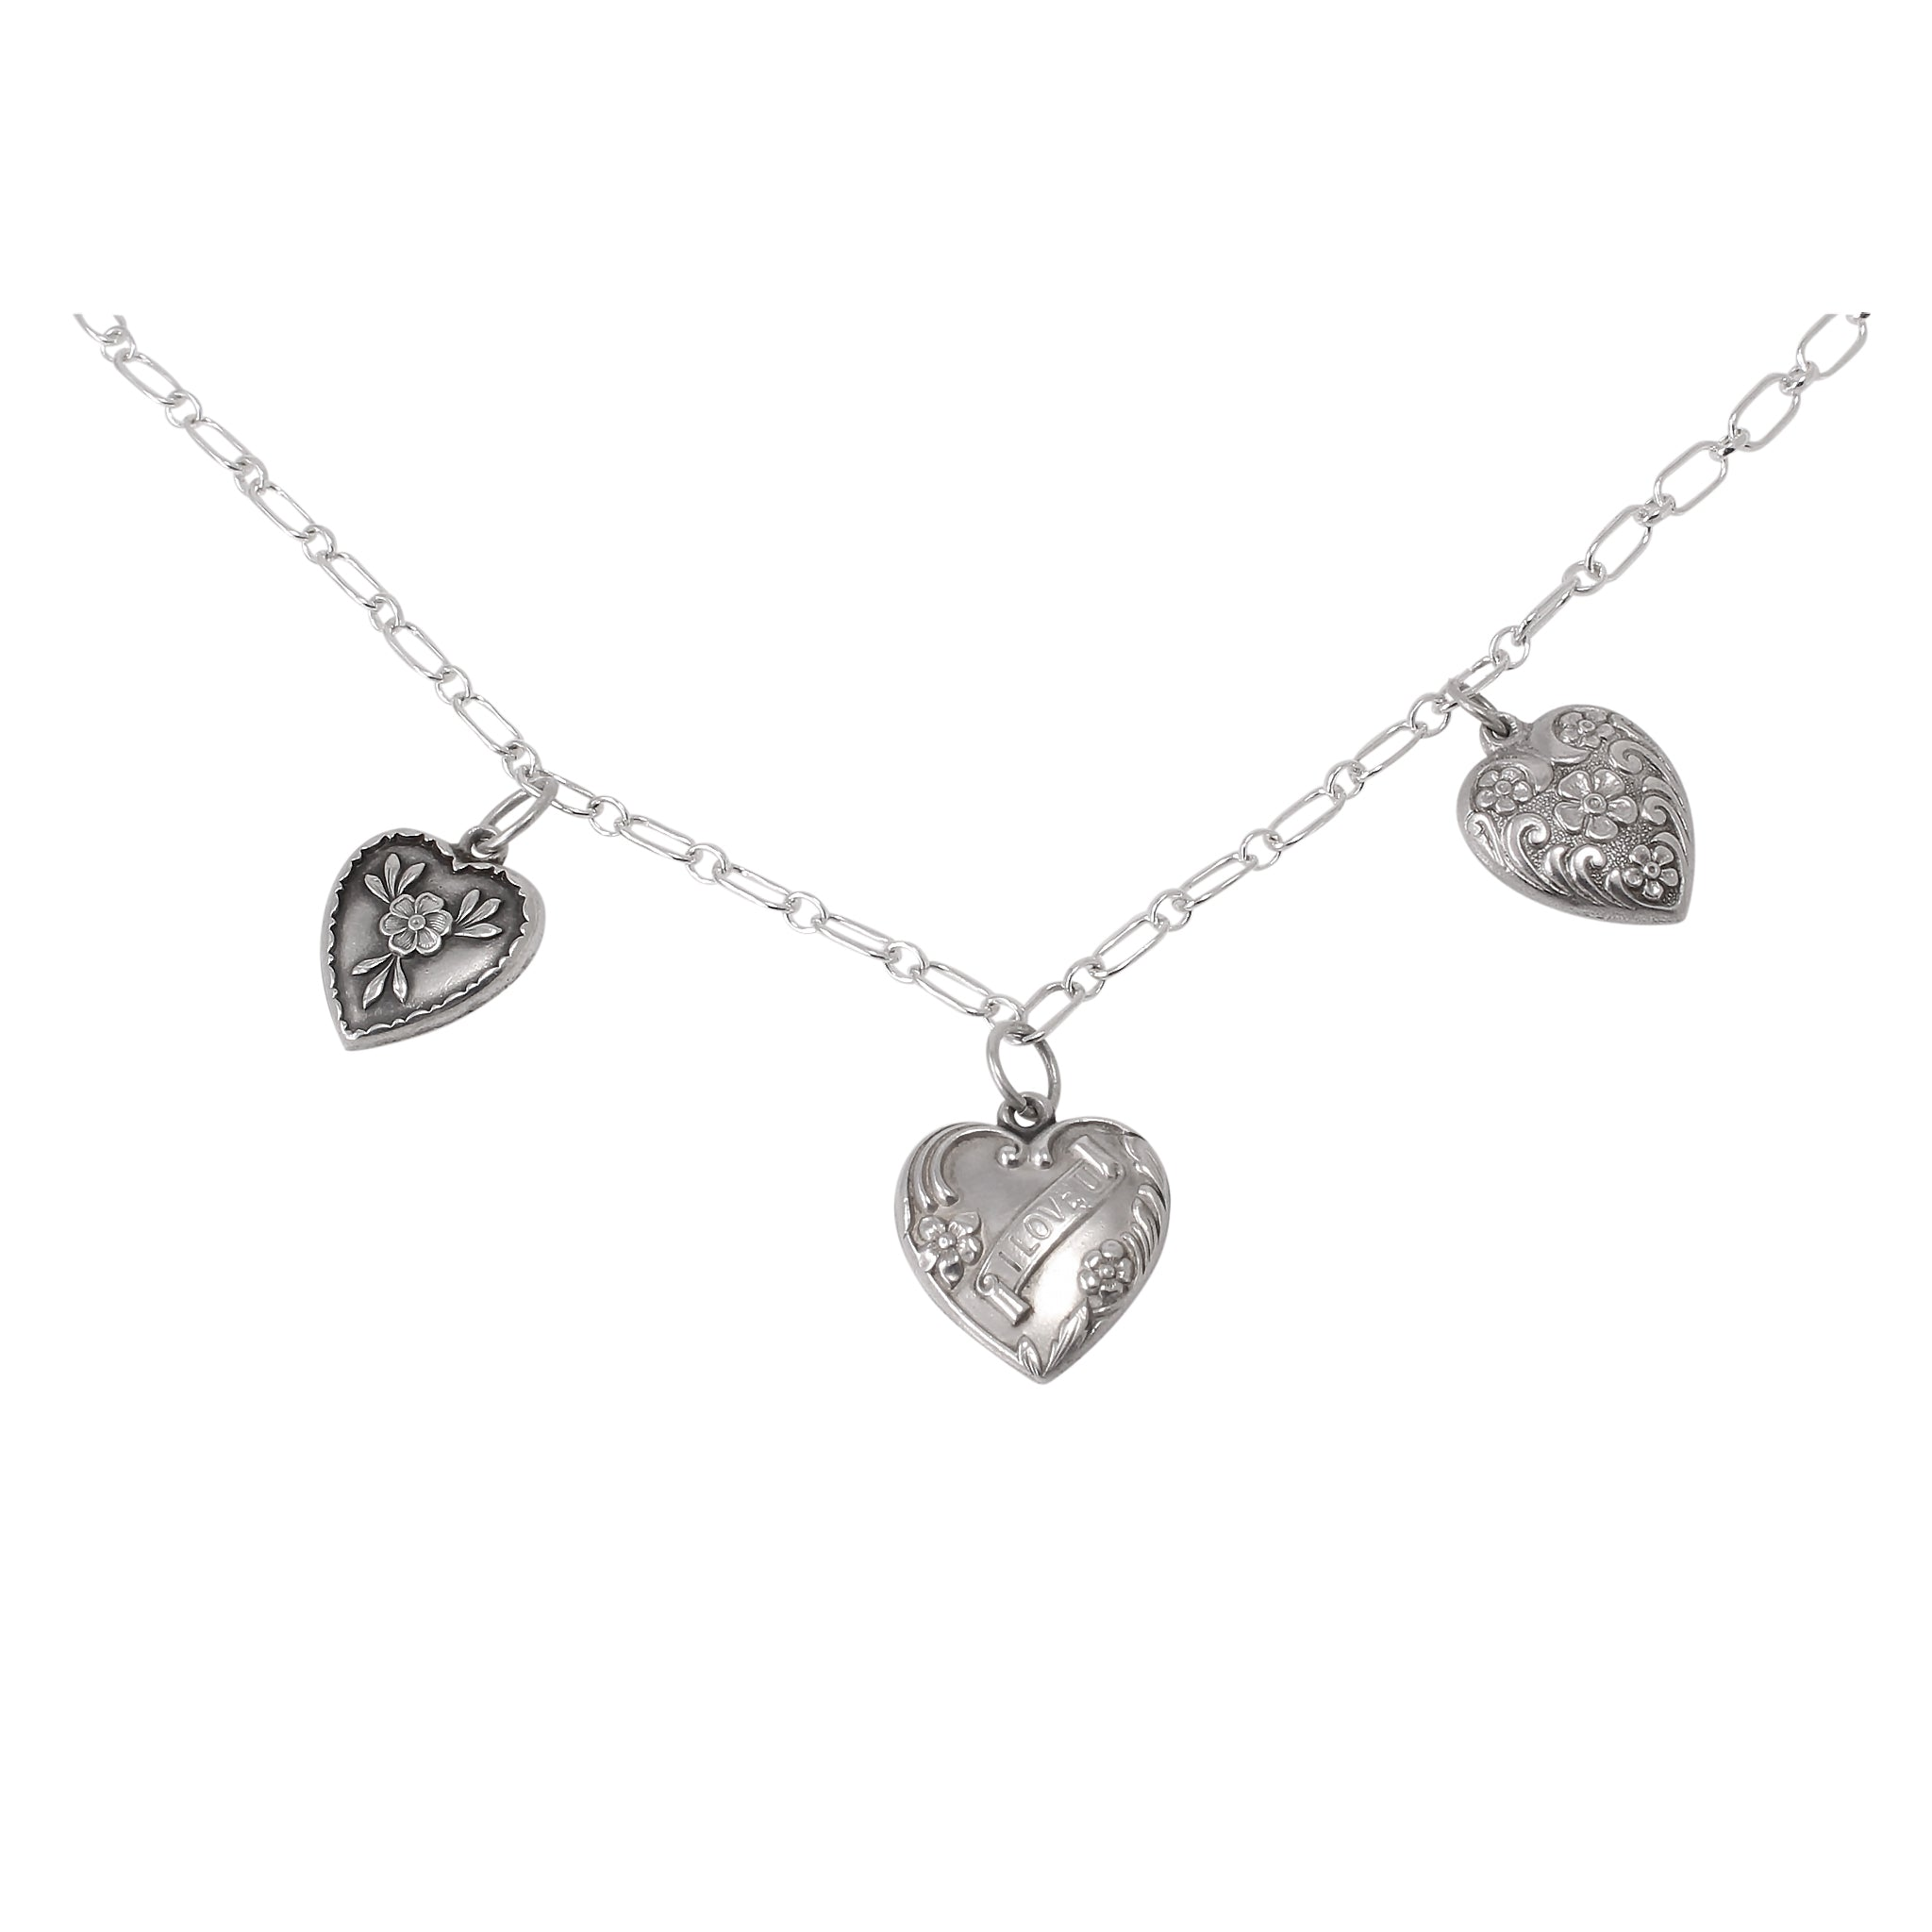 Vintage Sterling Puffy Heart Charms Symbol of Love Necklace